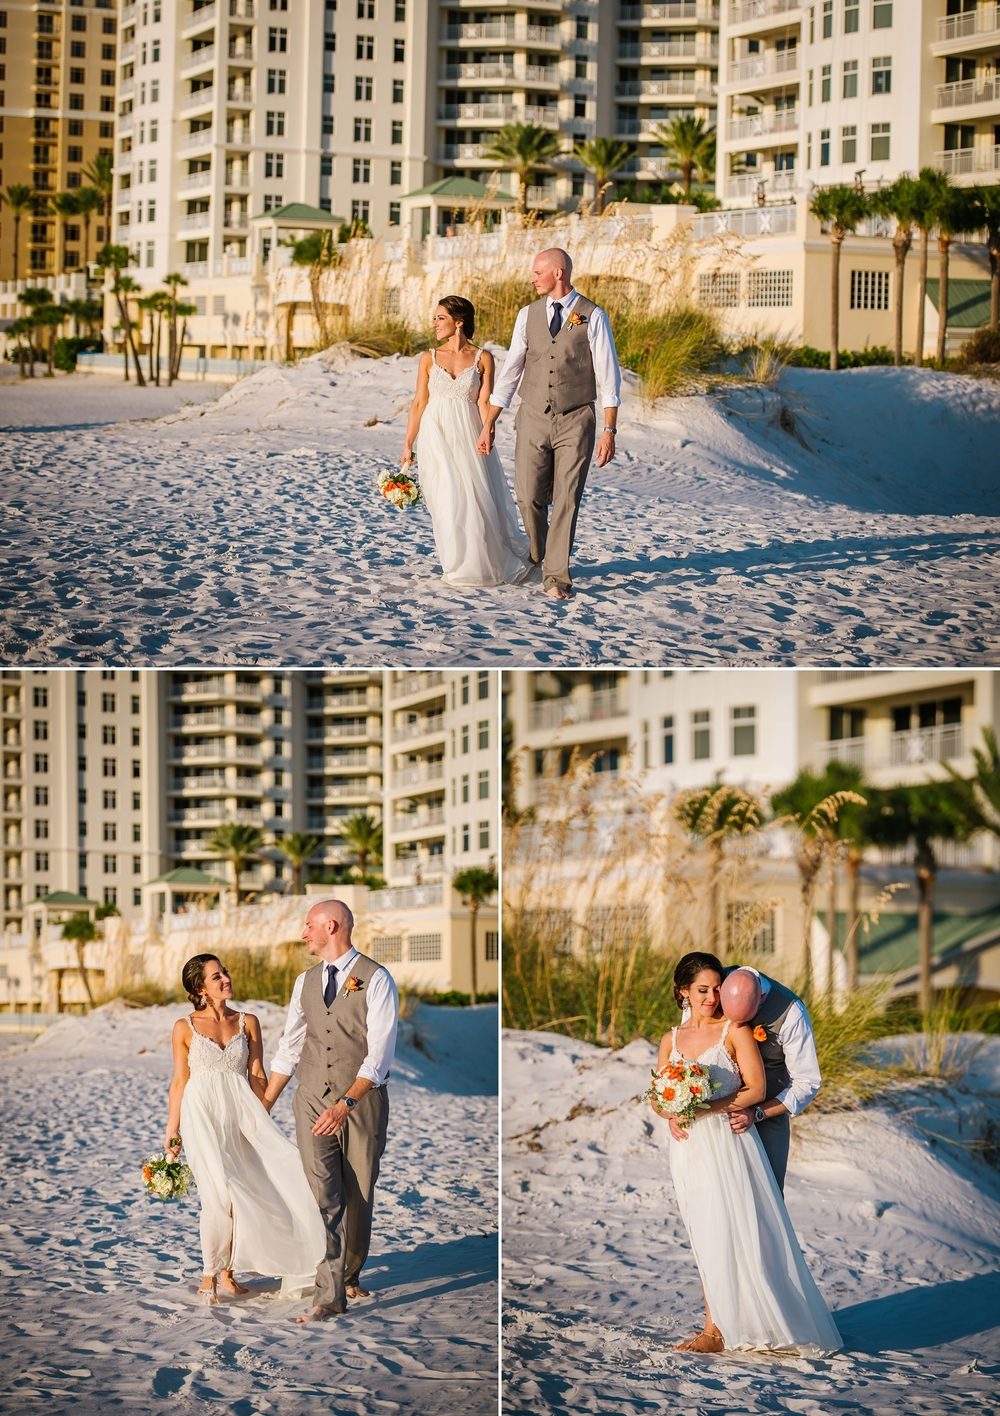 clearwater-beach-wedding-photography-ashlee-hamon_0026.jpg